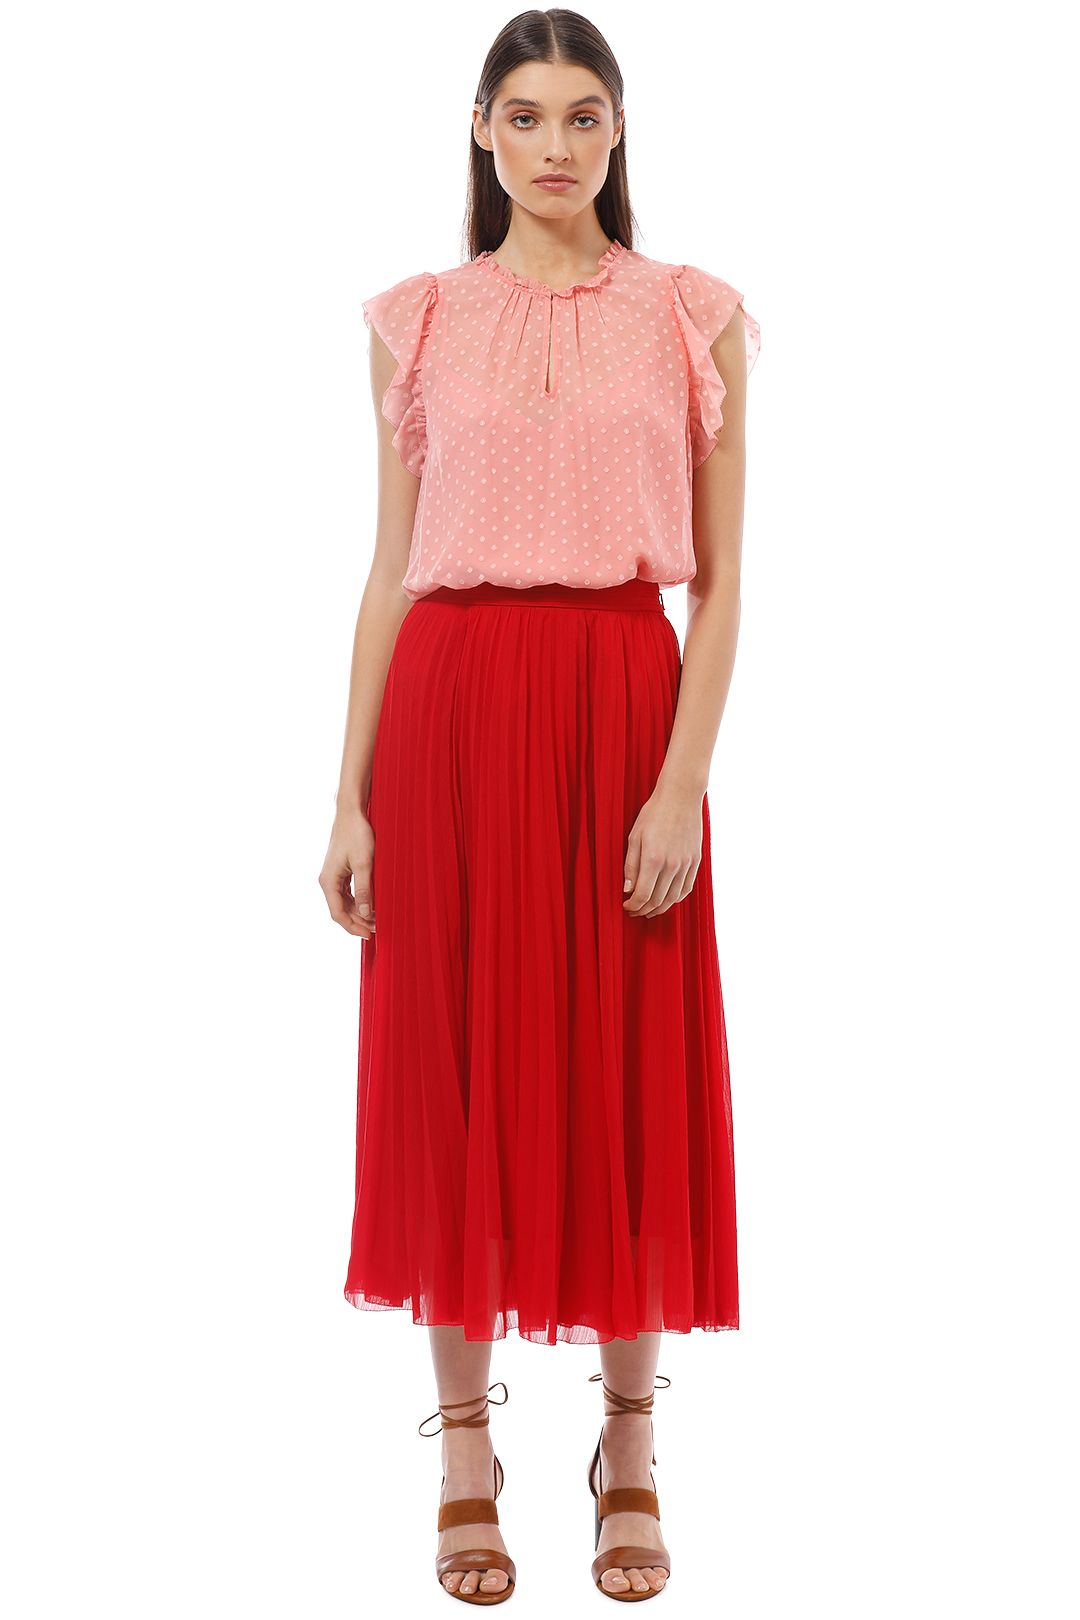 Witchery - Romantic Frill Top - Pink - Front